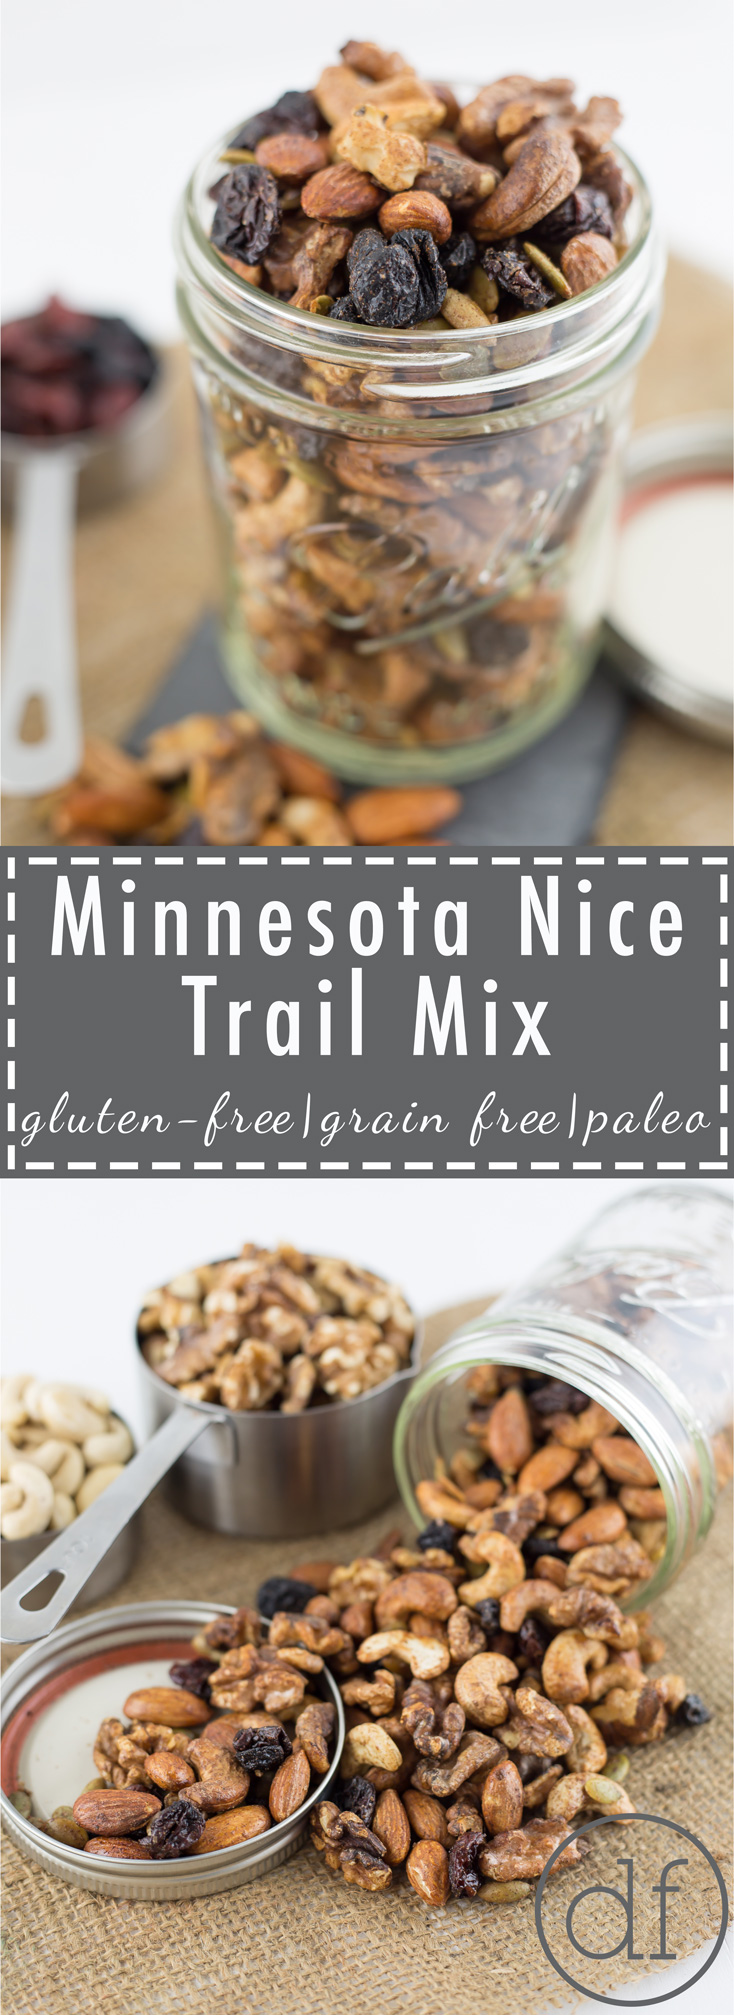 MN nice trail mix, grain free, gluten free, dairy free, paleo, north shore hiking, paleo recipes, define fettle, primal